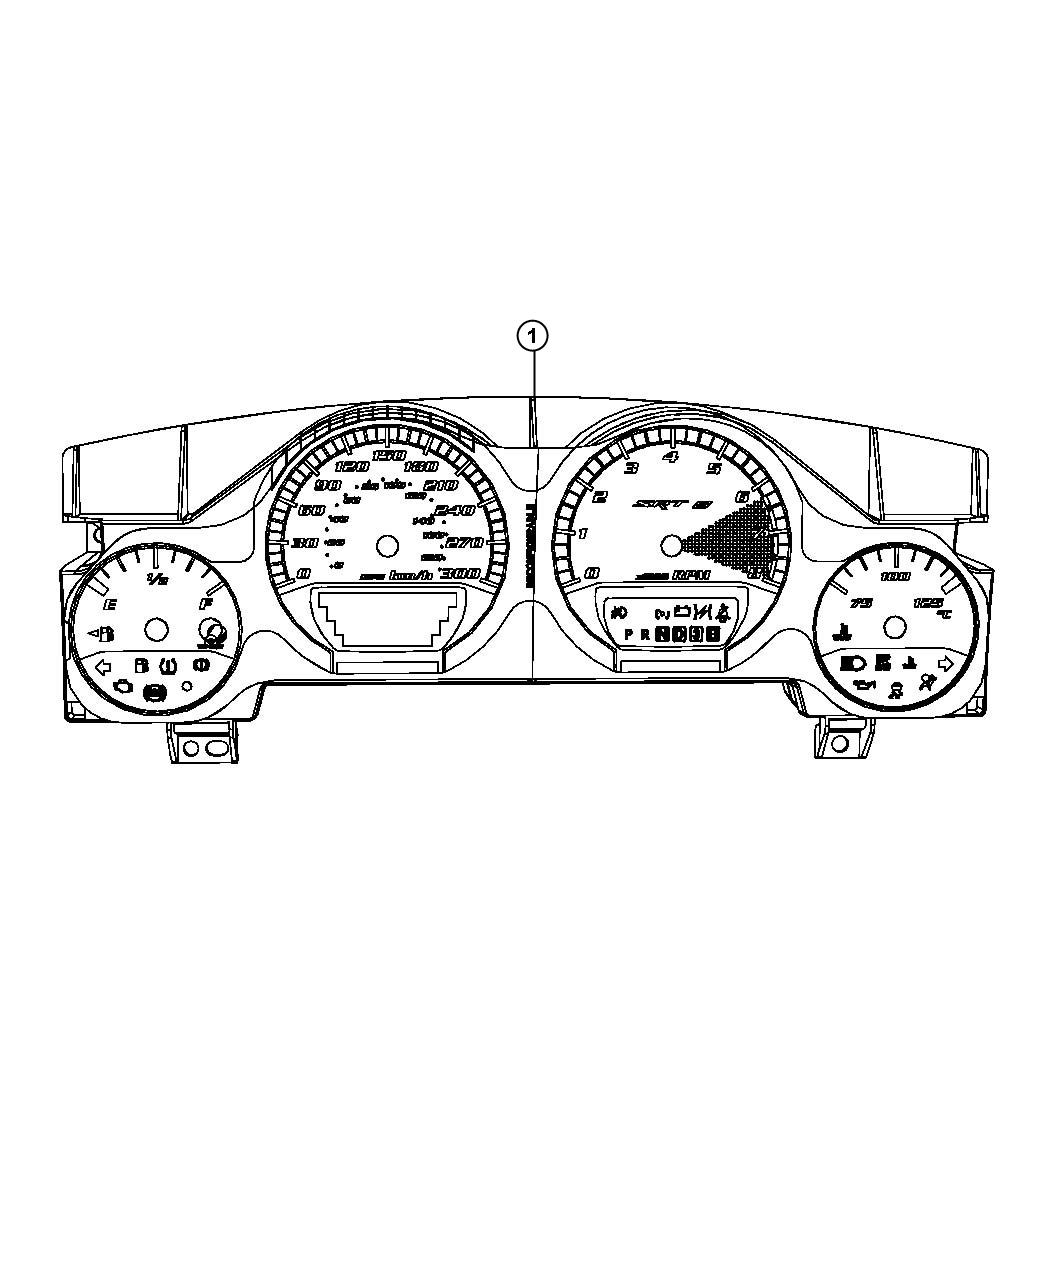 2010 Dodge Cluster. Instrument panel. [[160 mph primary